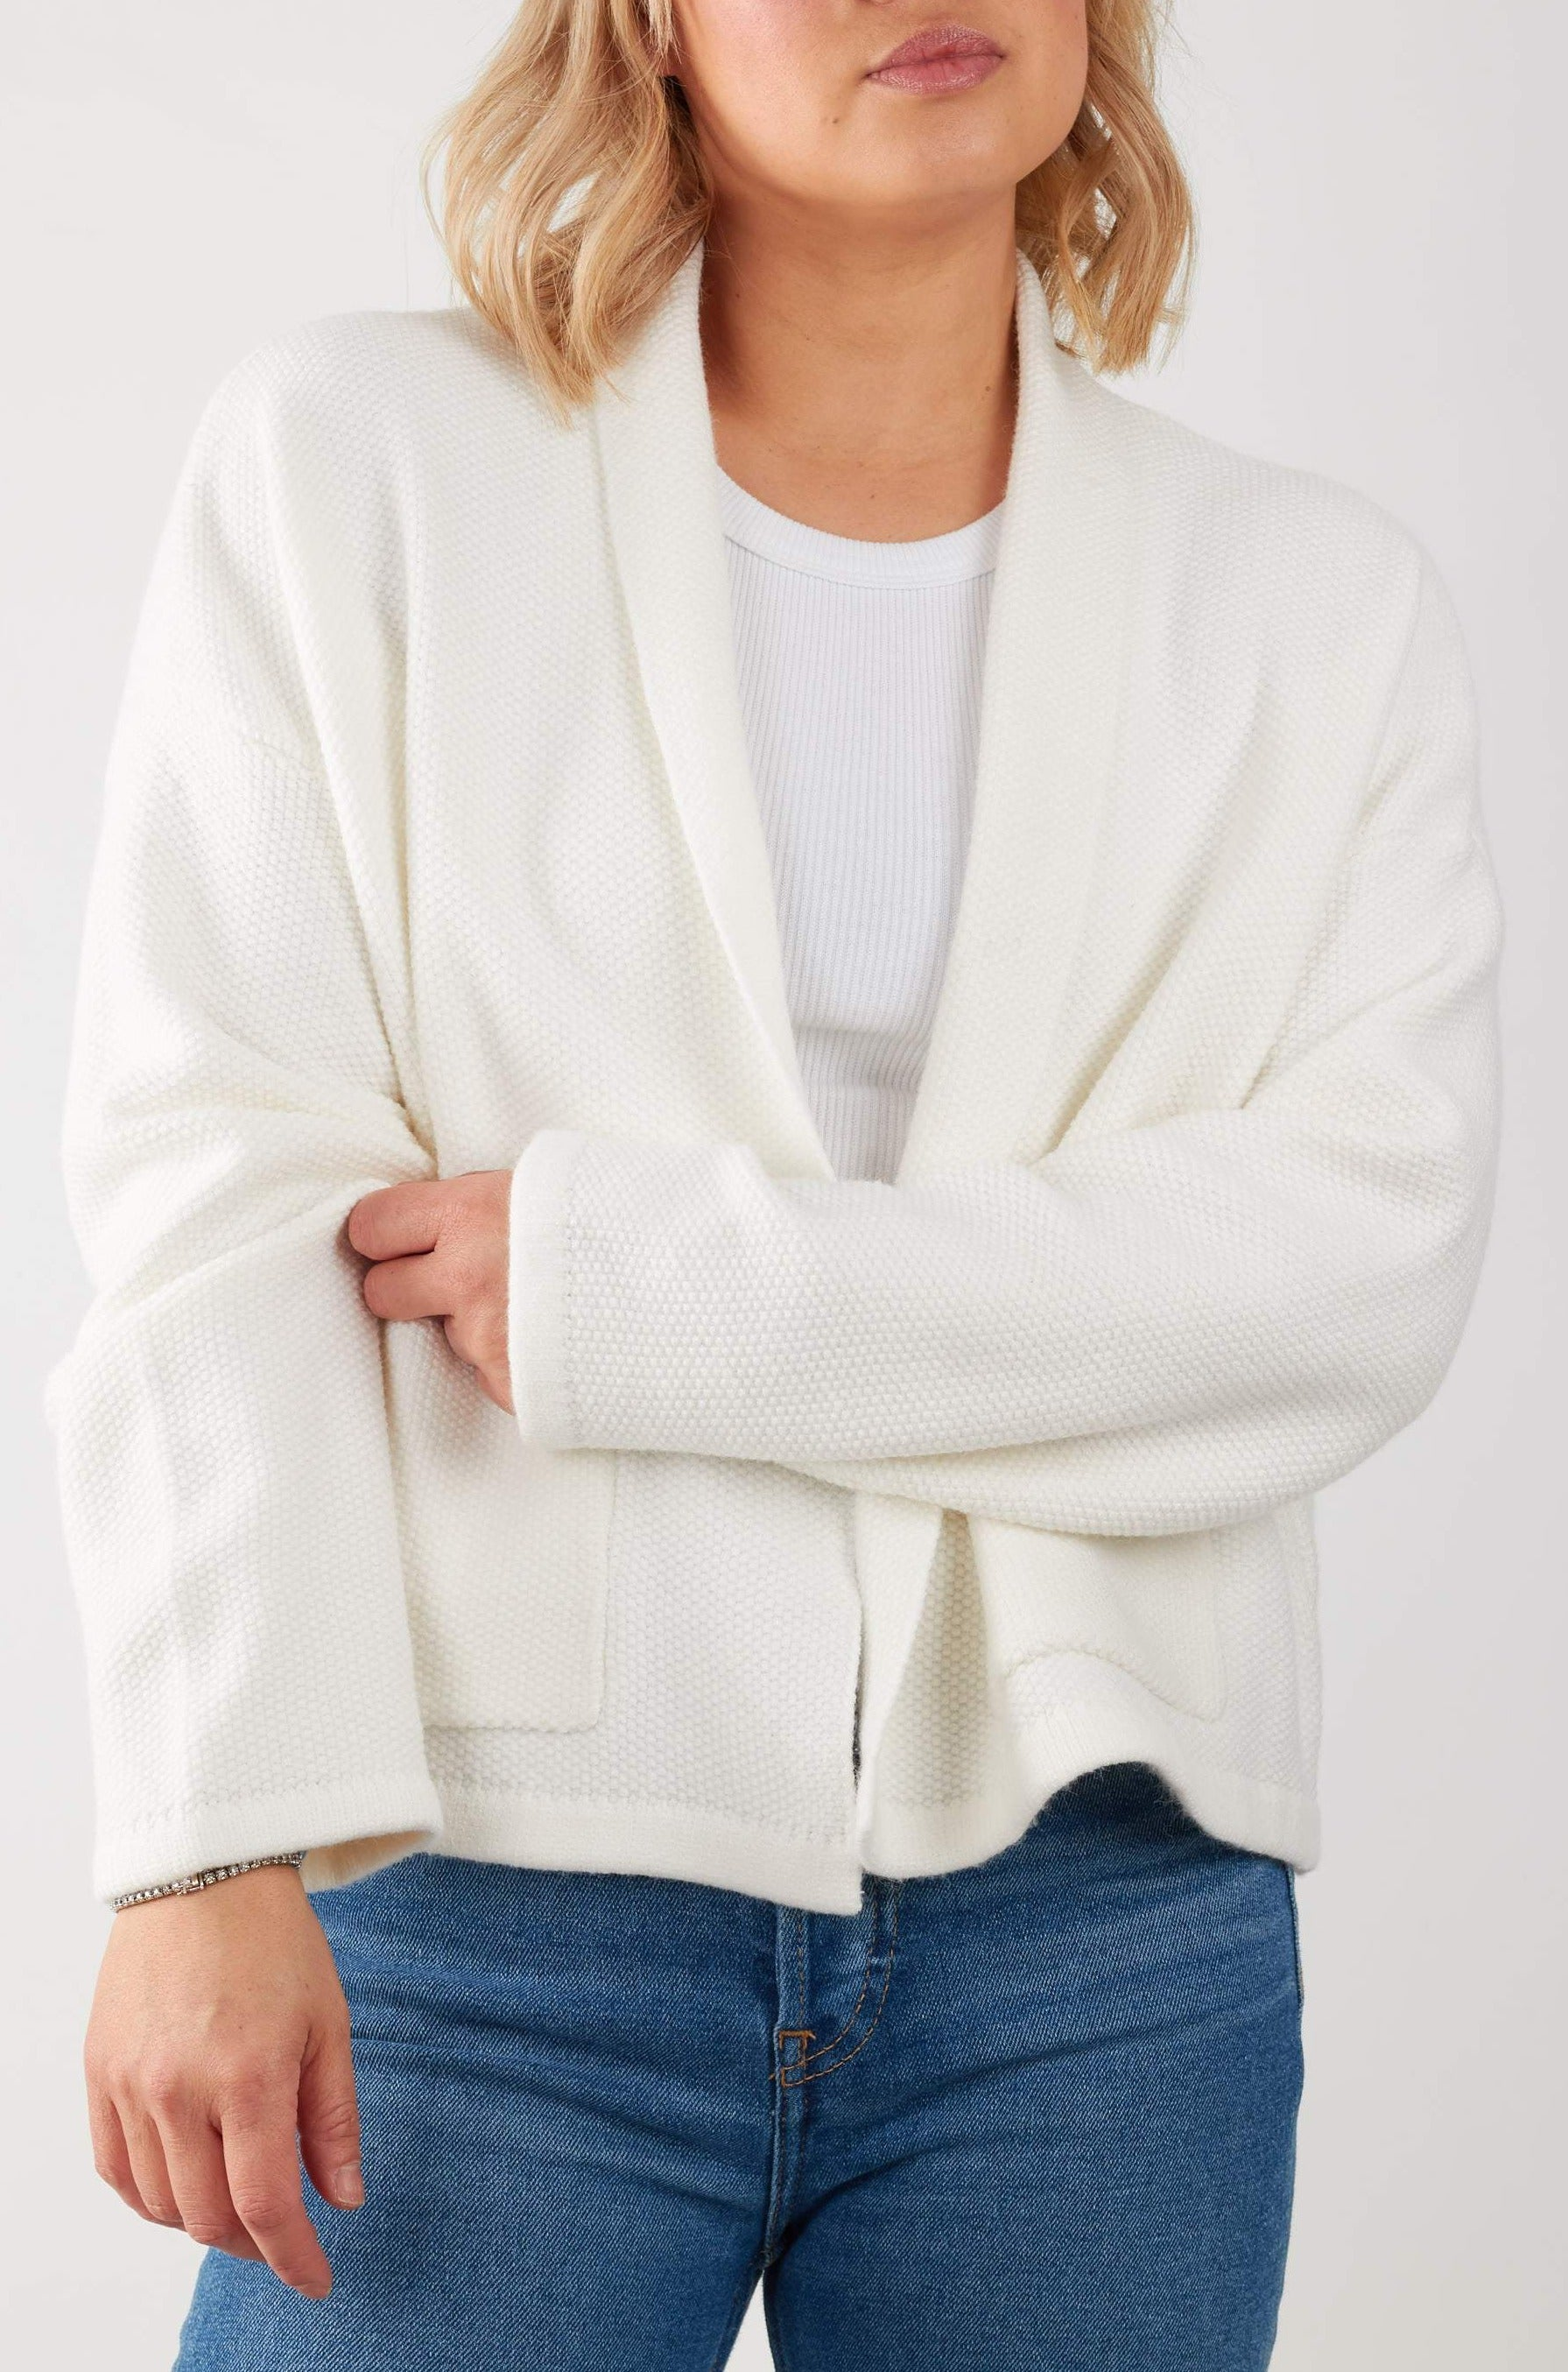 Shawl collar  open front cardigan with patch pockets in a soft waffle knit. Slightly cropped boxy fit.